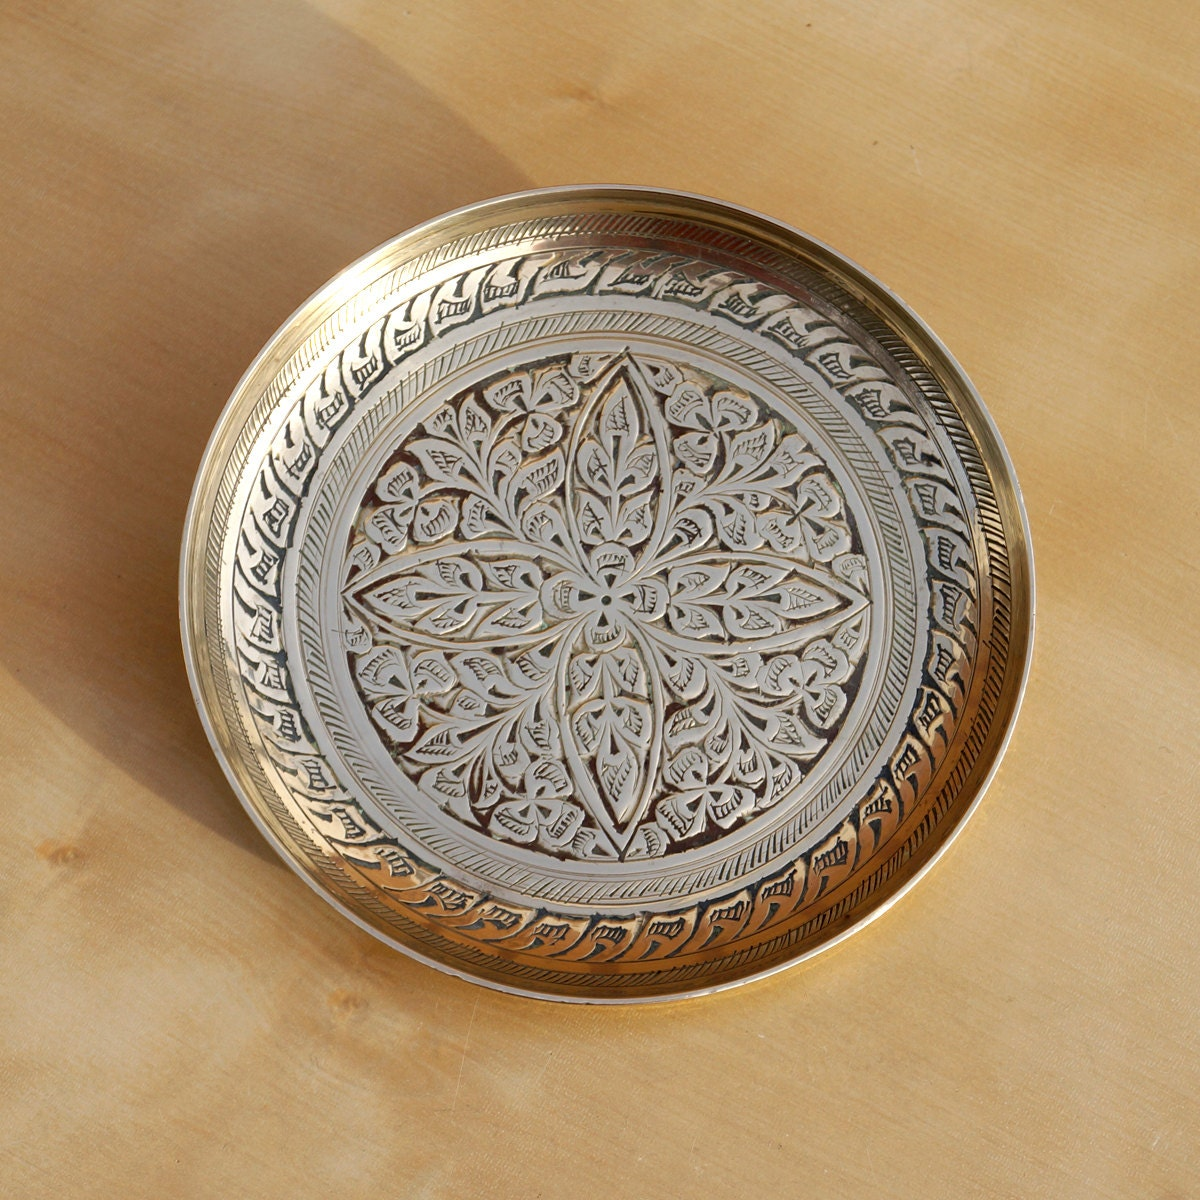 #6A462423498120 Vintage Brass Tray / Plate / Dish Floral Leaf Design By UKAmobile Meest recente 2e Hands Design Meubels Friesland 691 pic 12001200691 Ontwerp